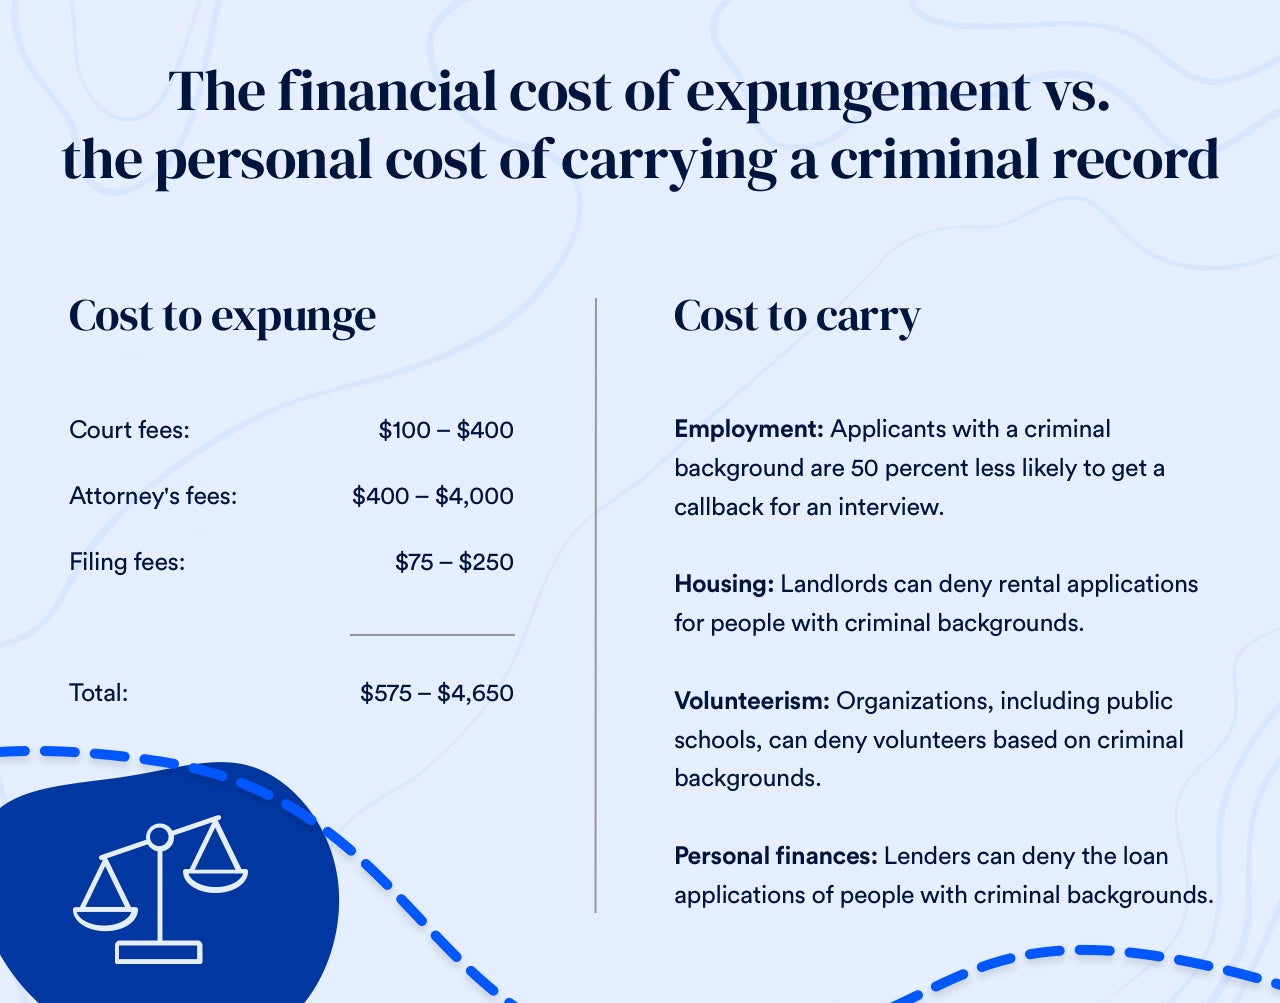 Chart describing the cost to expunge vs. the cost to carry a criminal record